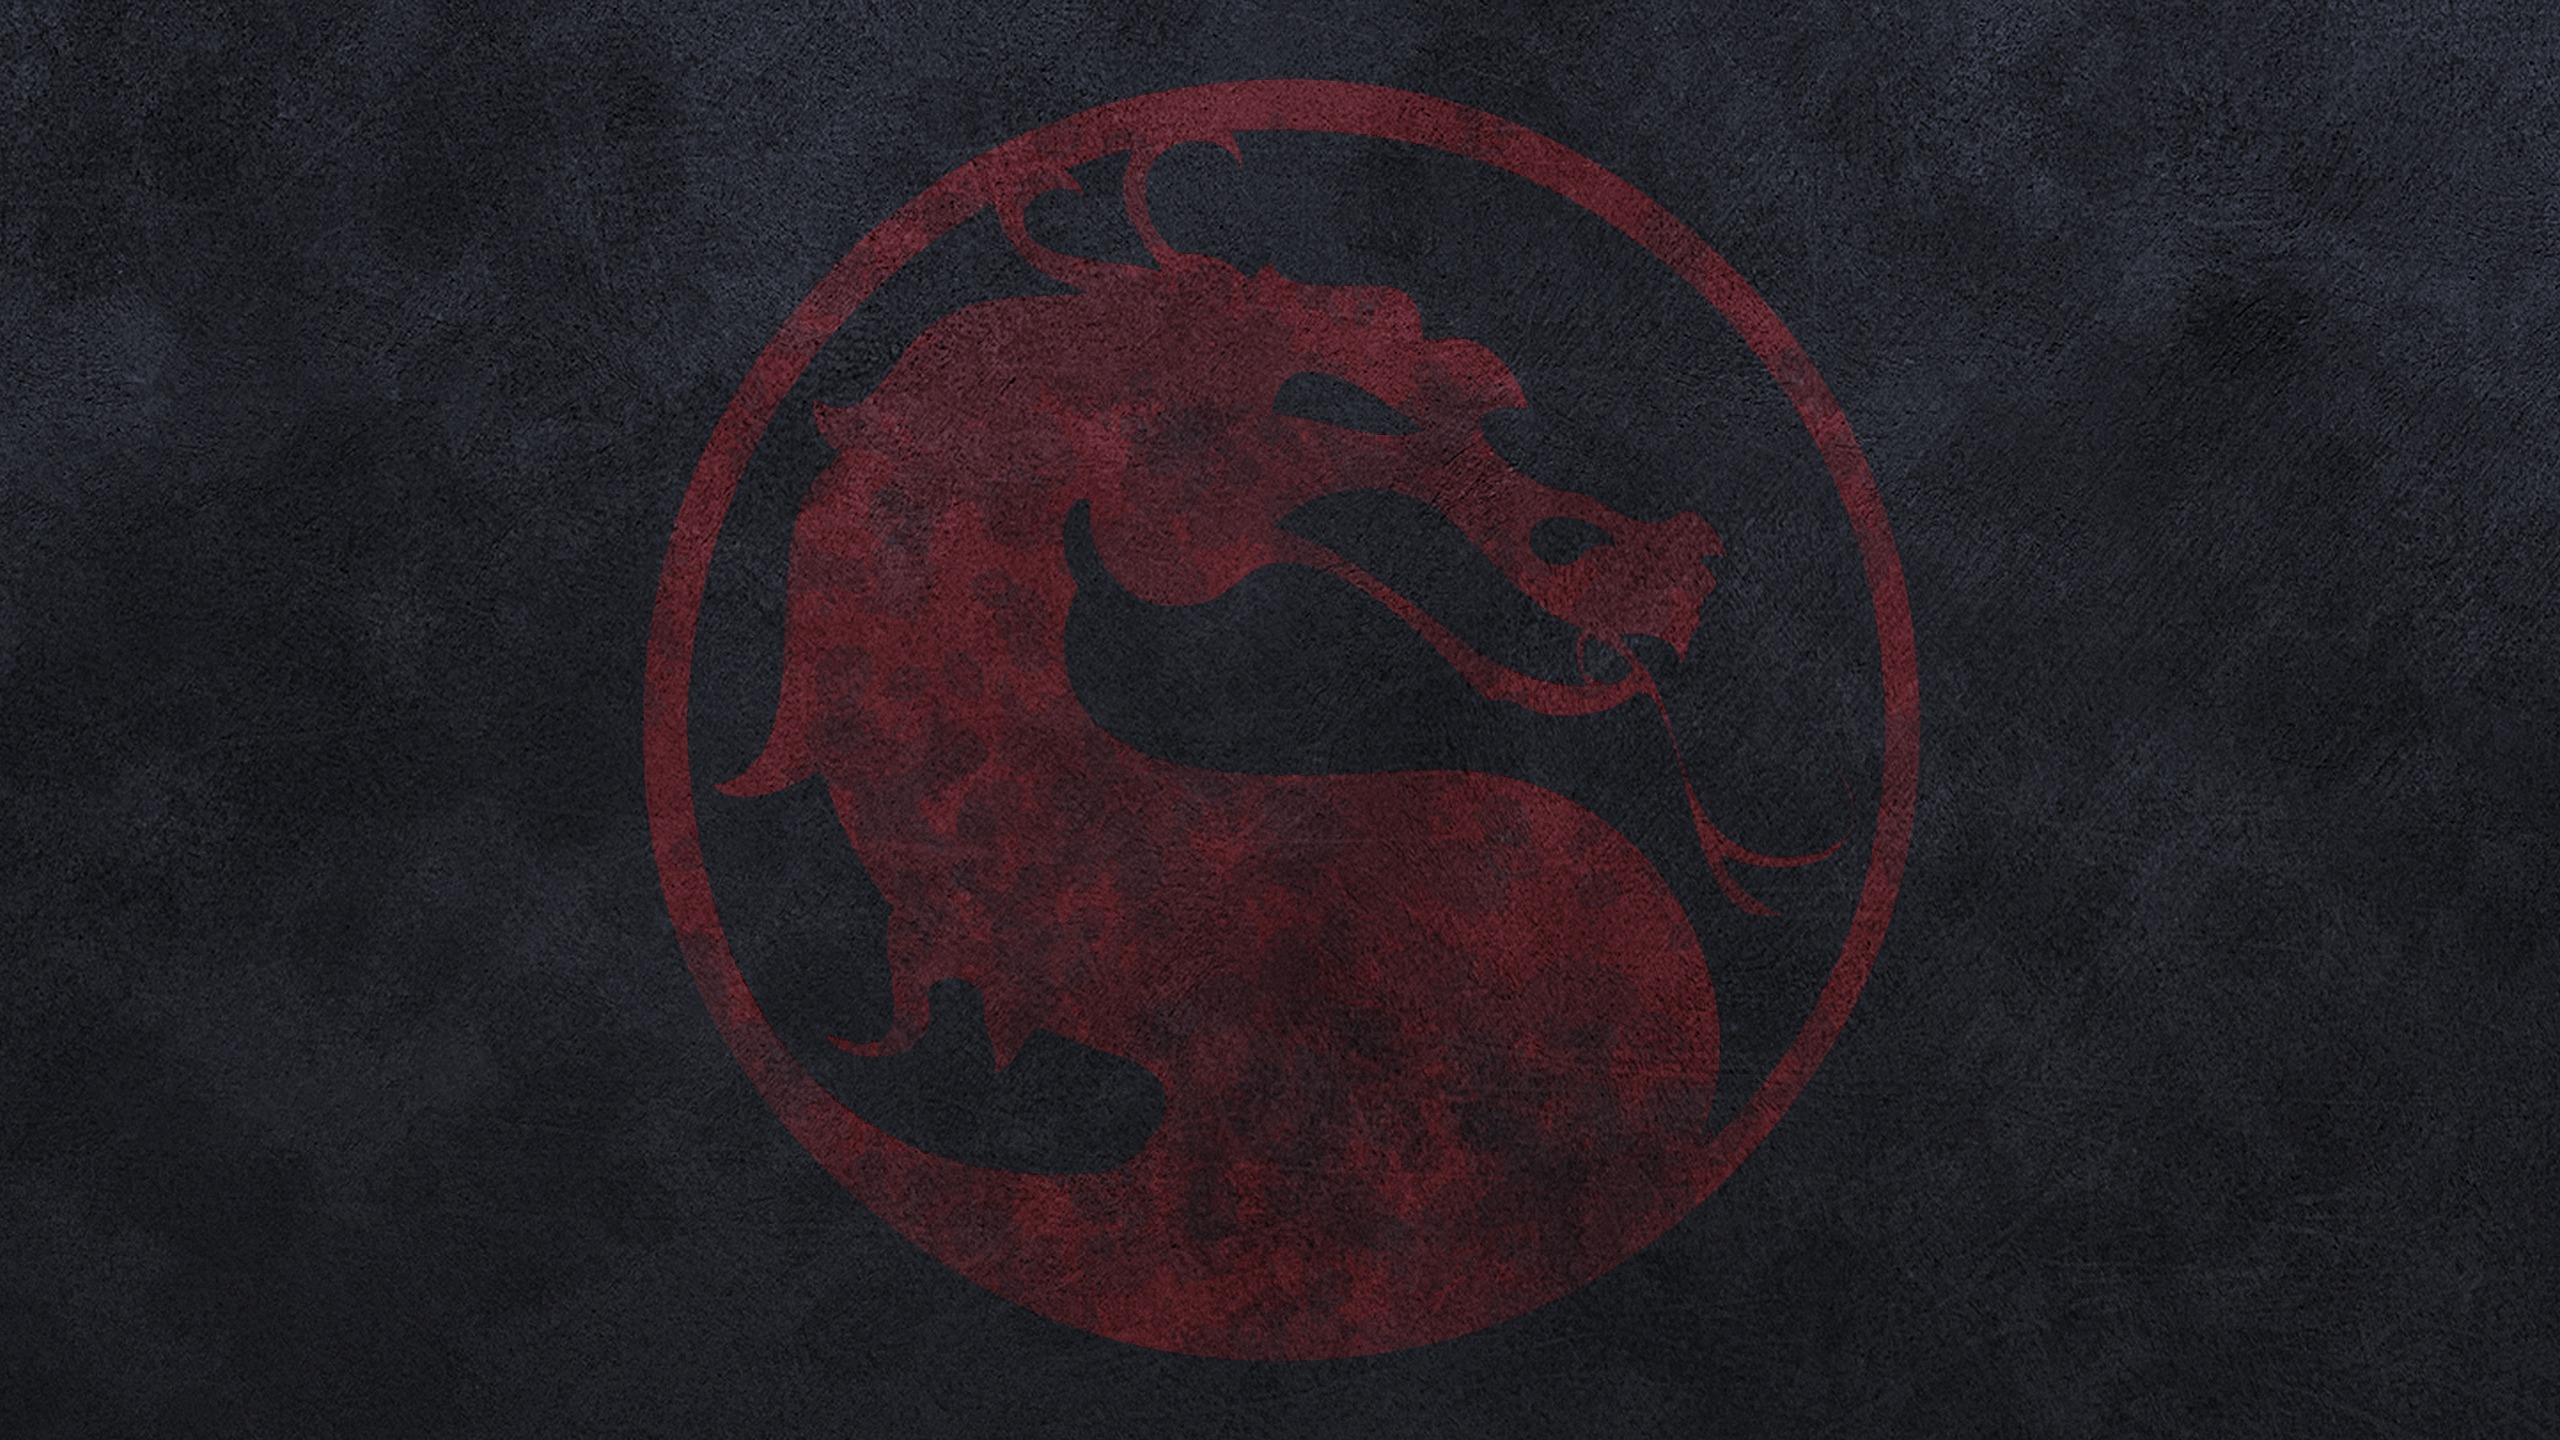 Mortal Kombat wallpaper Dragon on a dark background